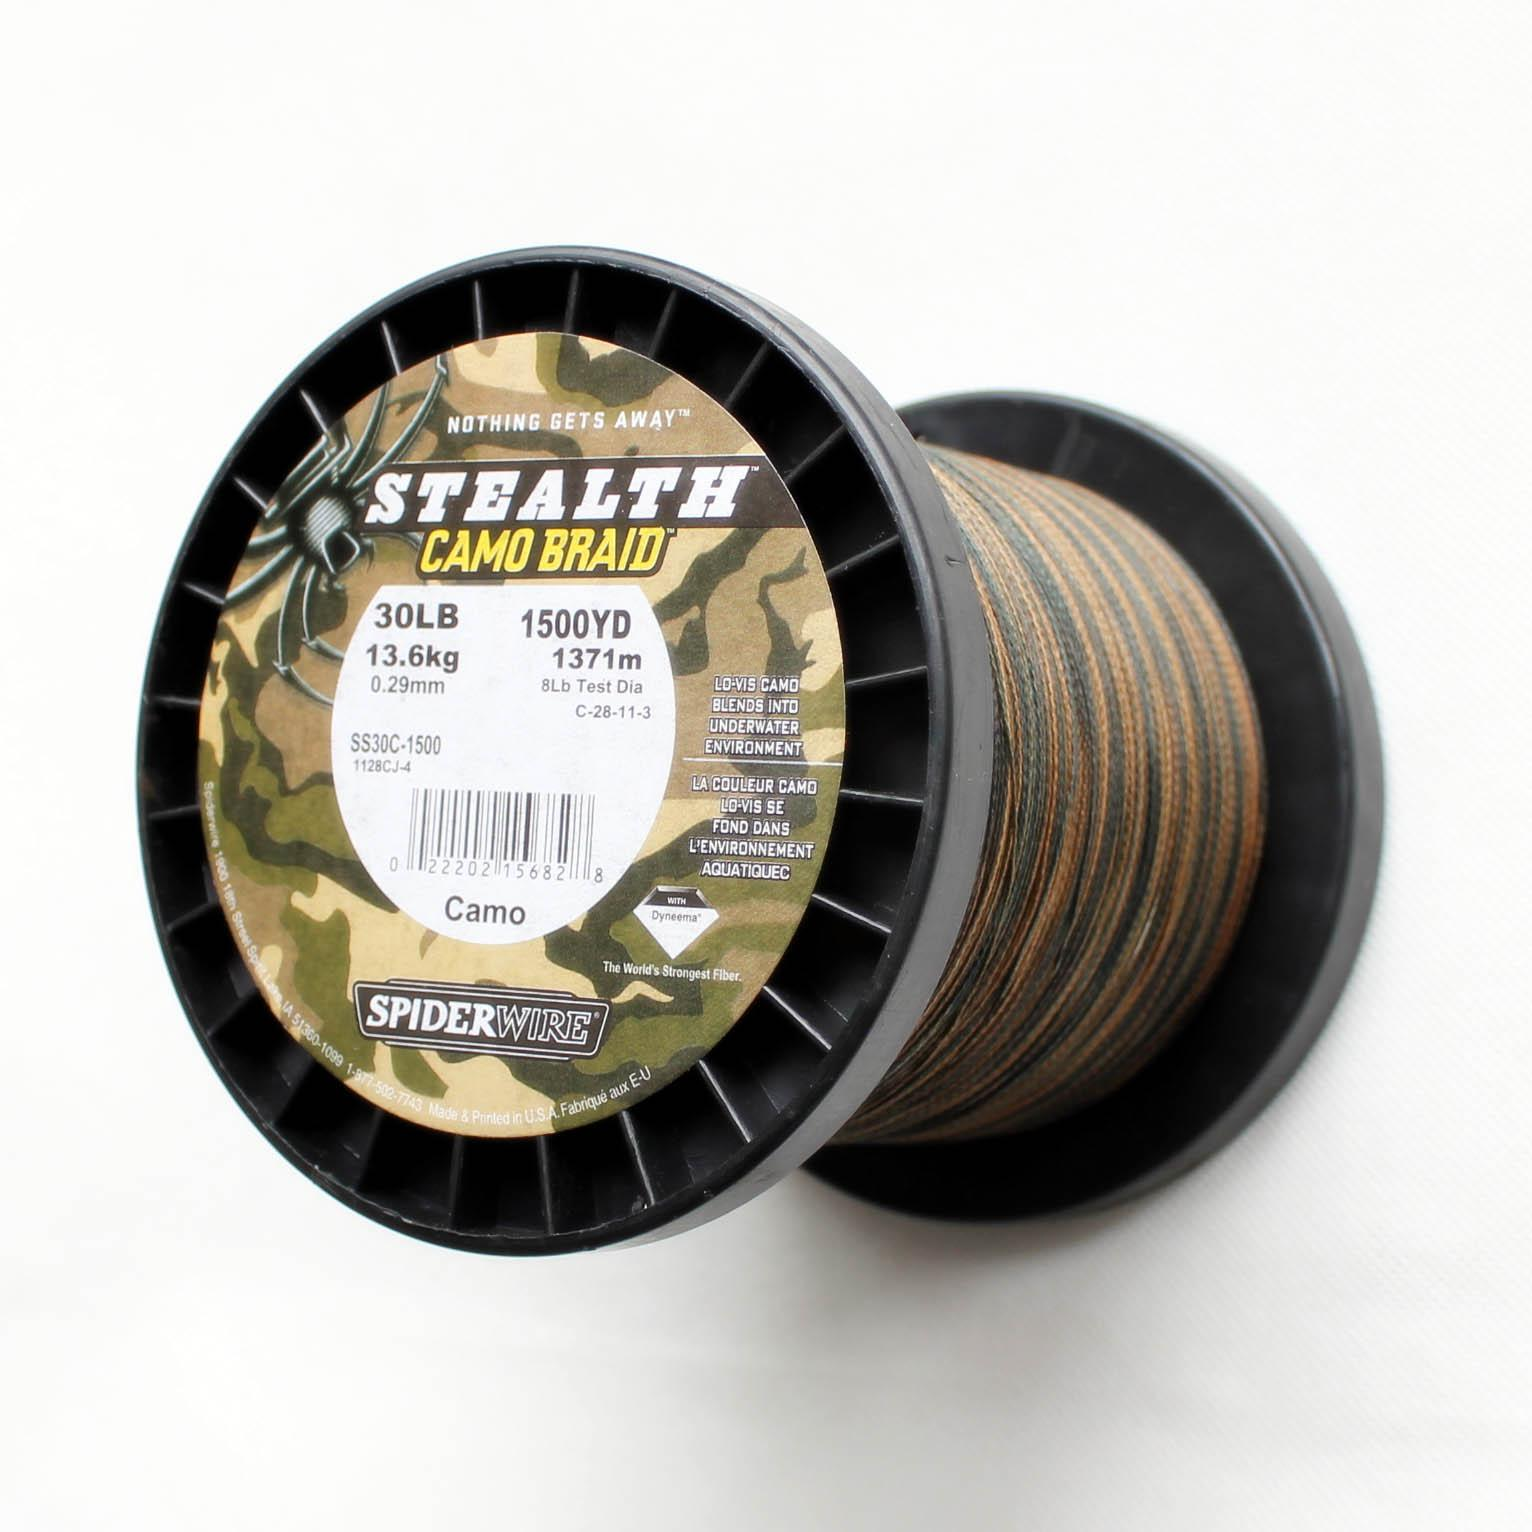 Spiderwire stealth camo braid fishing line 1500yd 30lb for Bulk braided fishing line